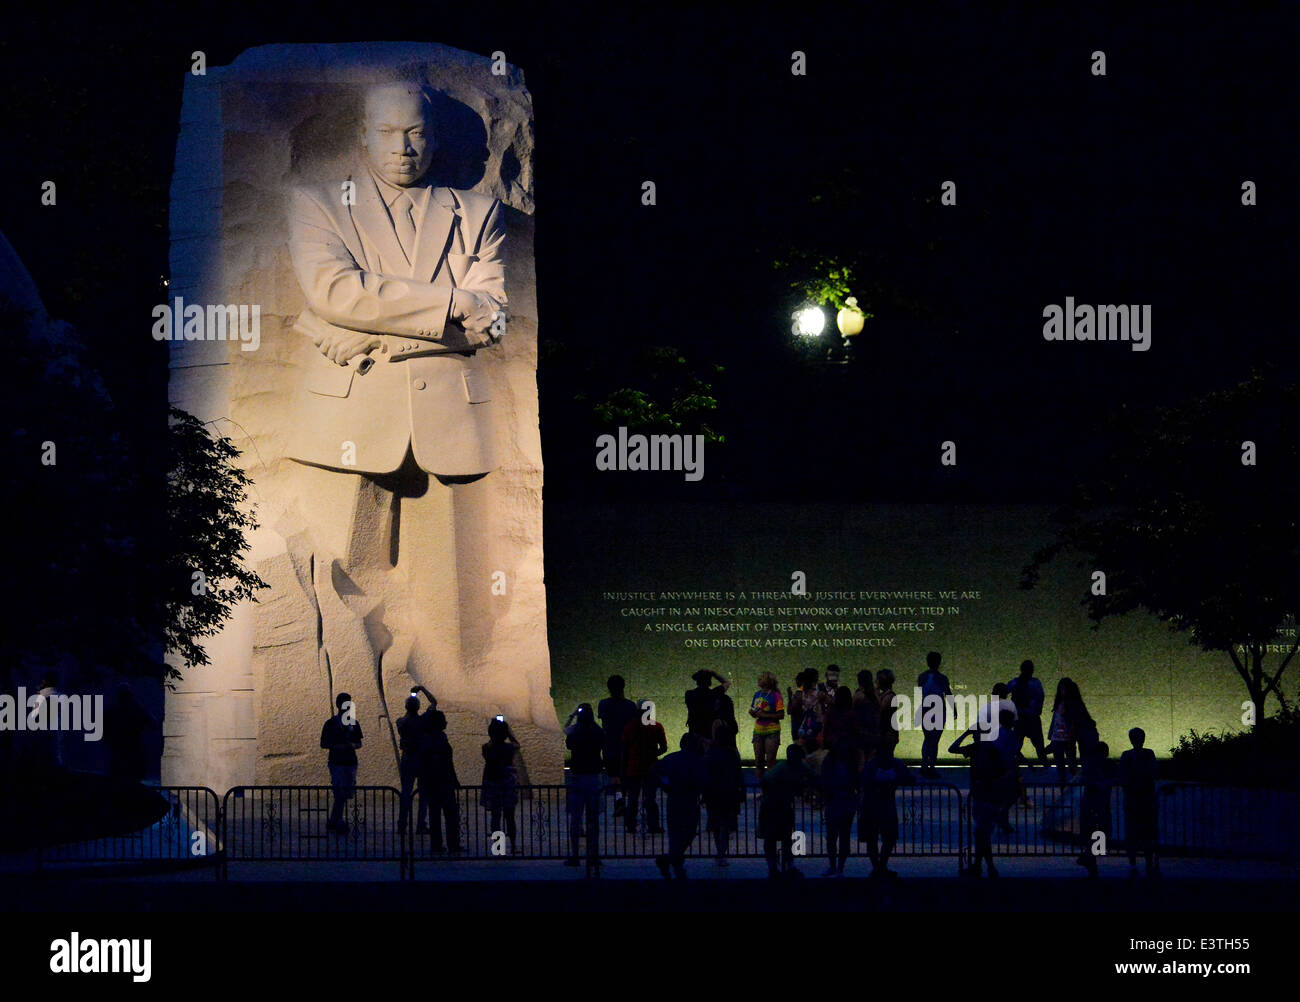 Tourists Gather At Night To Visit The Martin Luther King Jr